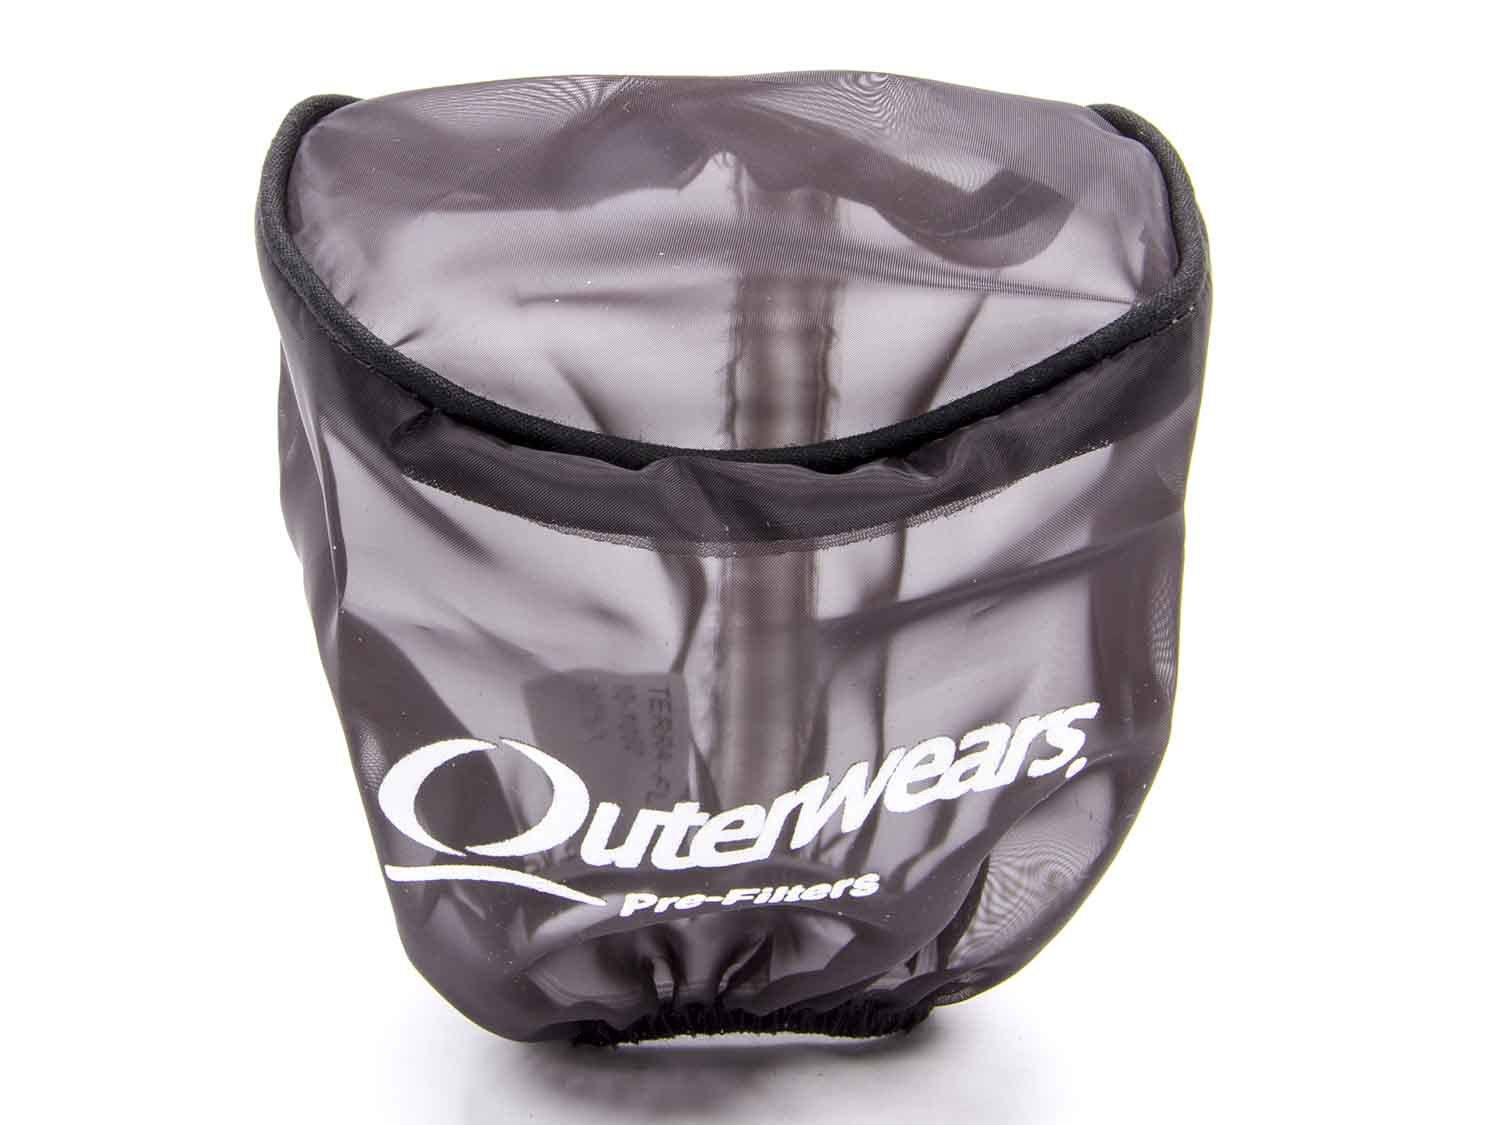 Outerwears 10-1021-01 Pre-Filter Black Oval 15 in x 5.5in x 3.75in Tall